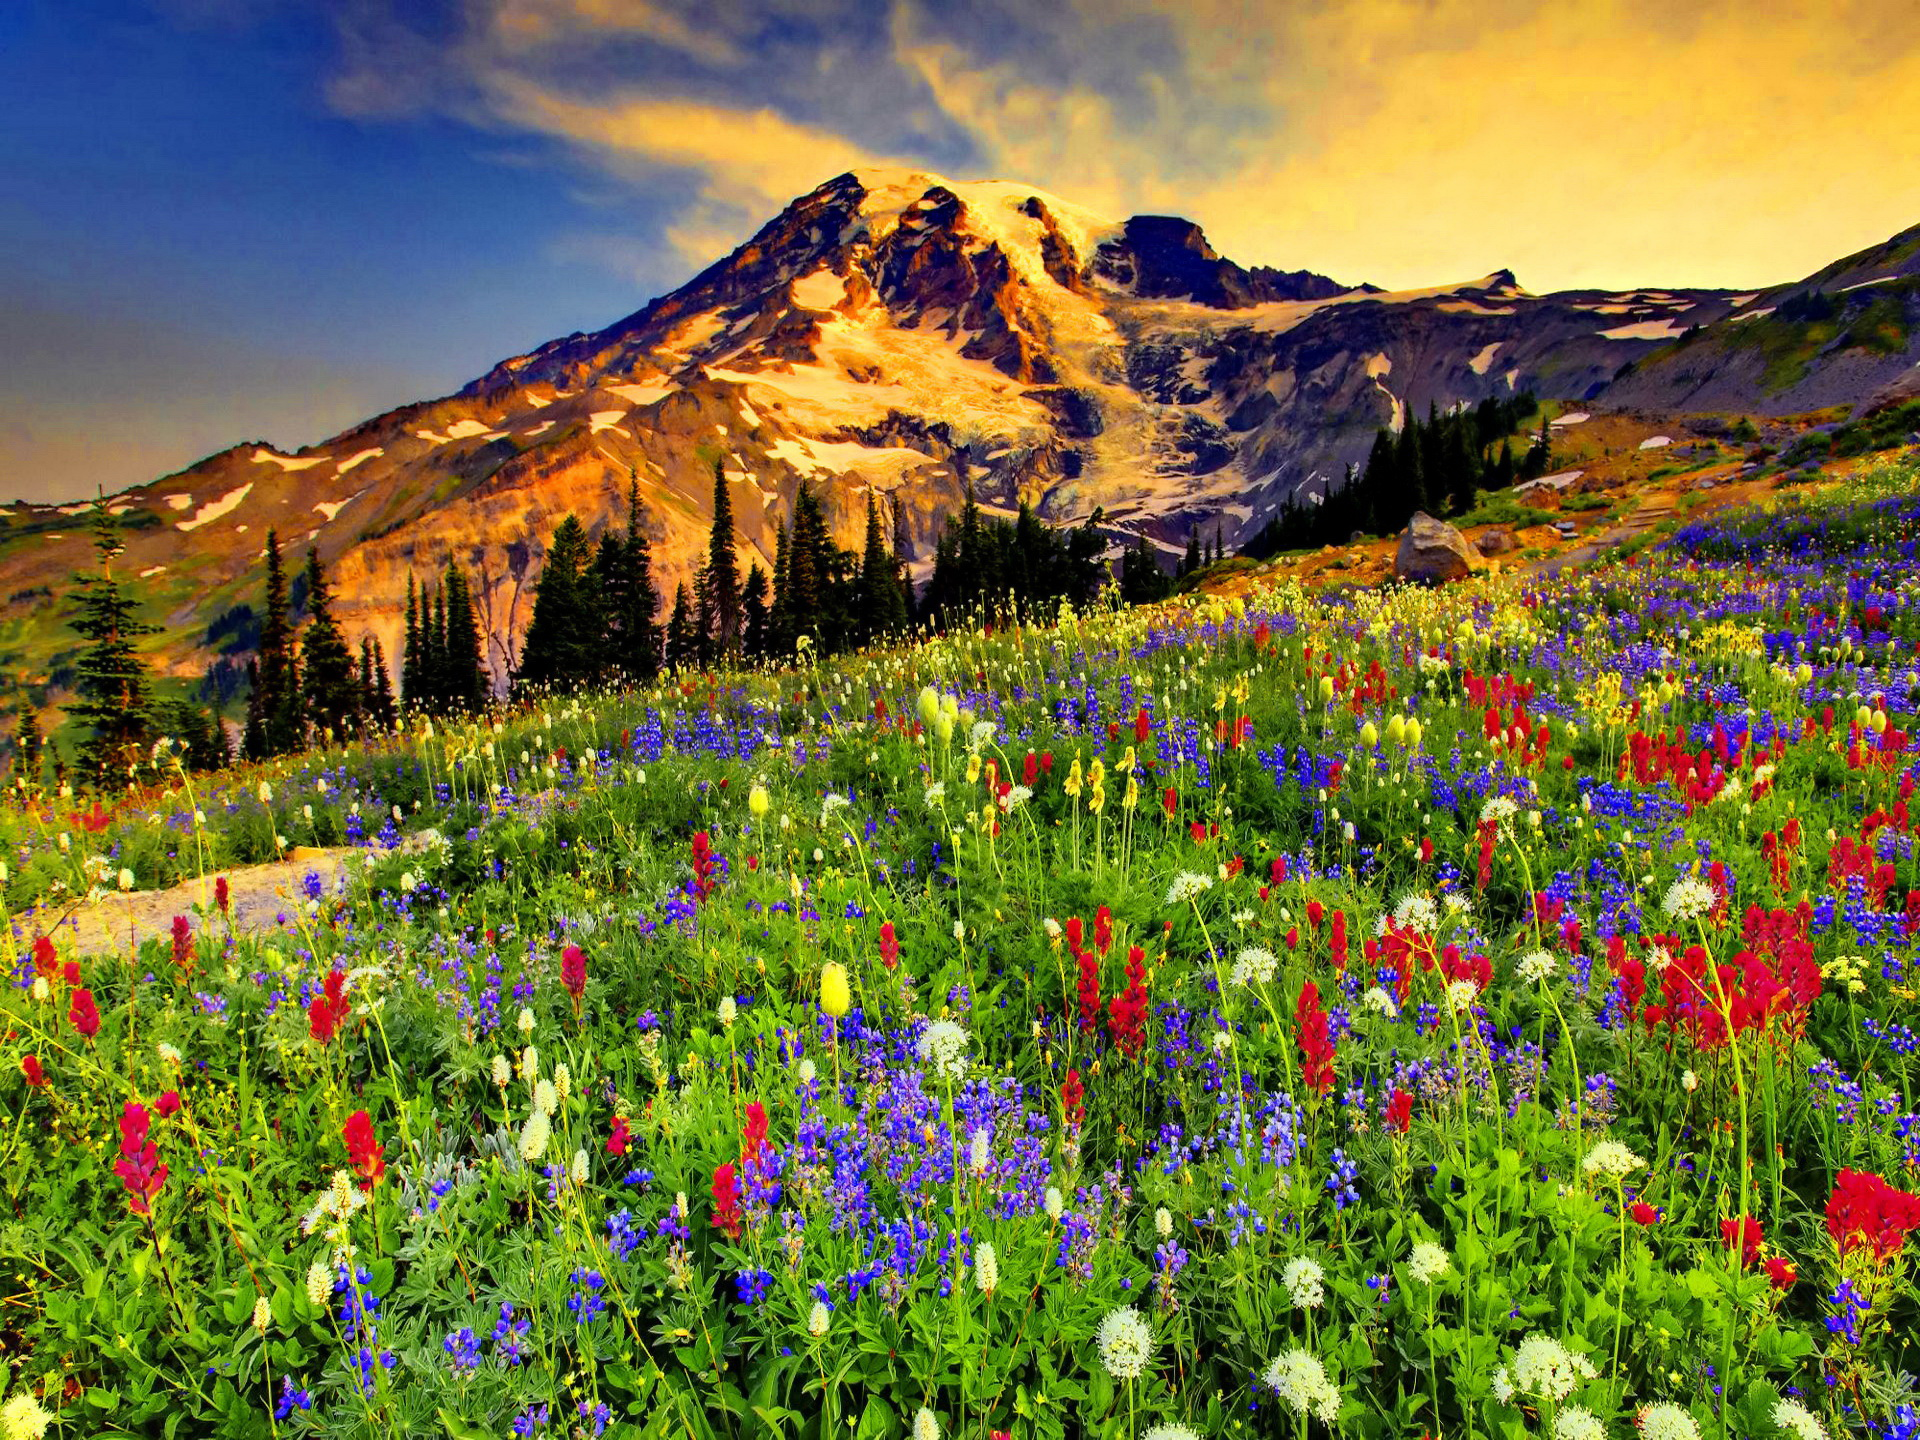 Flowers In The Mountains Wallpapers High Quality   Download Free Flowers In The Mountains wallpapers